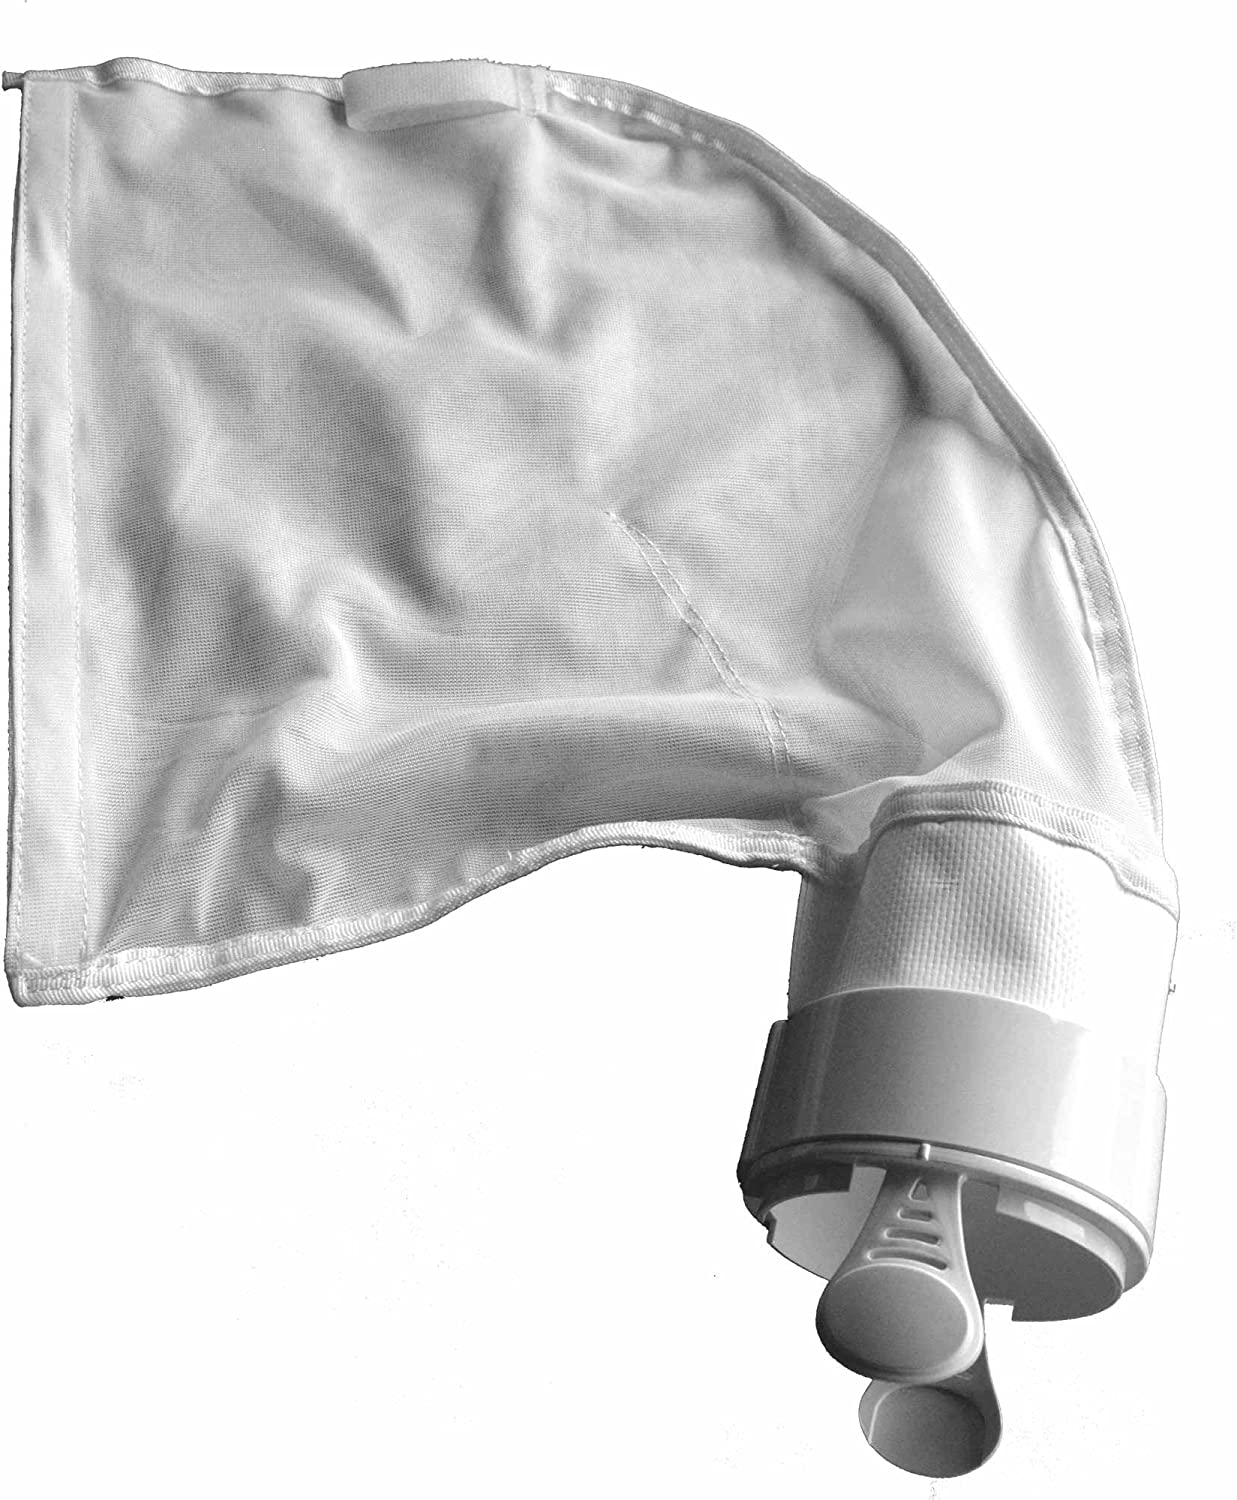 ATIE PoolSupplyTown 280 All Purpose Bag Replacement Fits for Polaris 280, 480 Pool Cleaner All Purpose Bag K13, K16